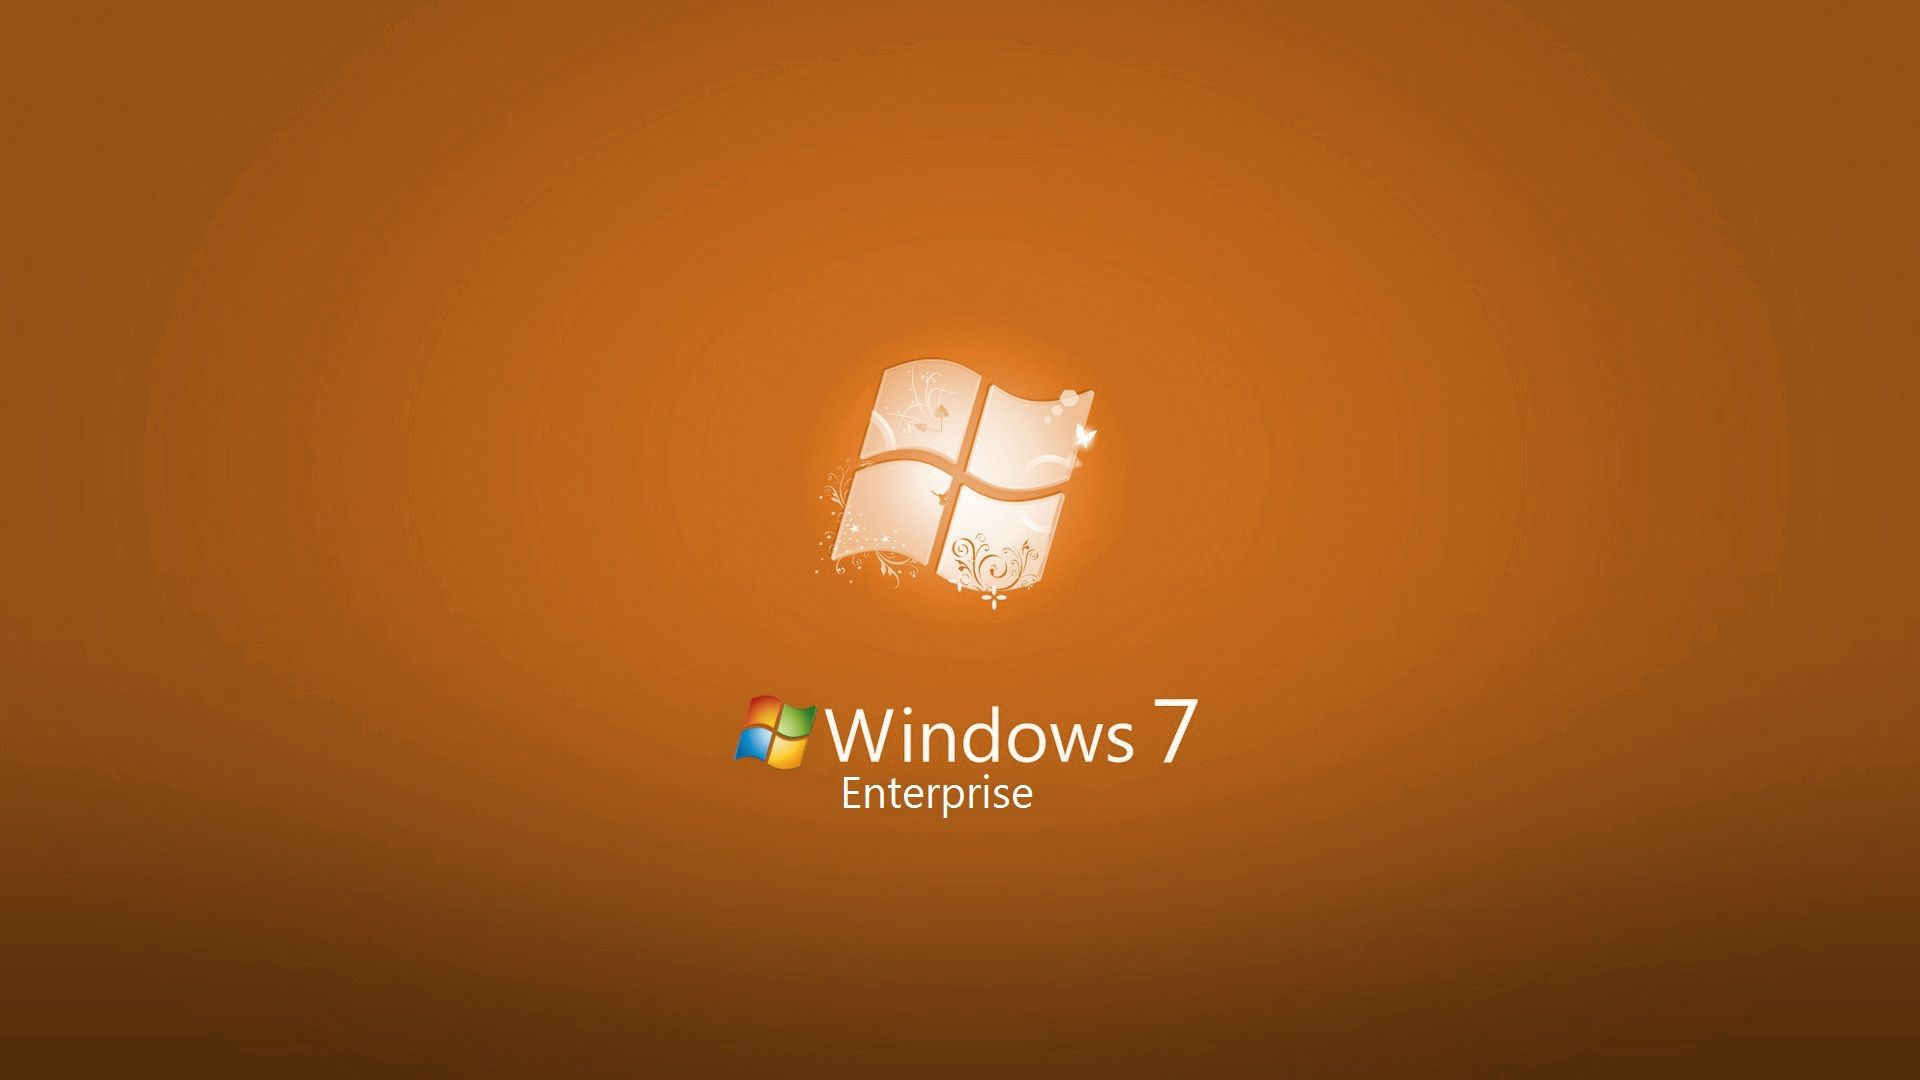 Windows 7 Enterprise Iso Enterprise Wallpaper Windows